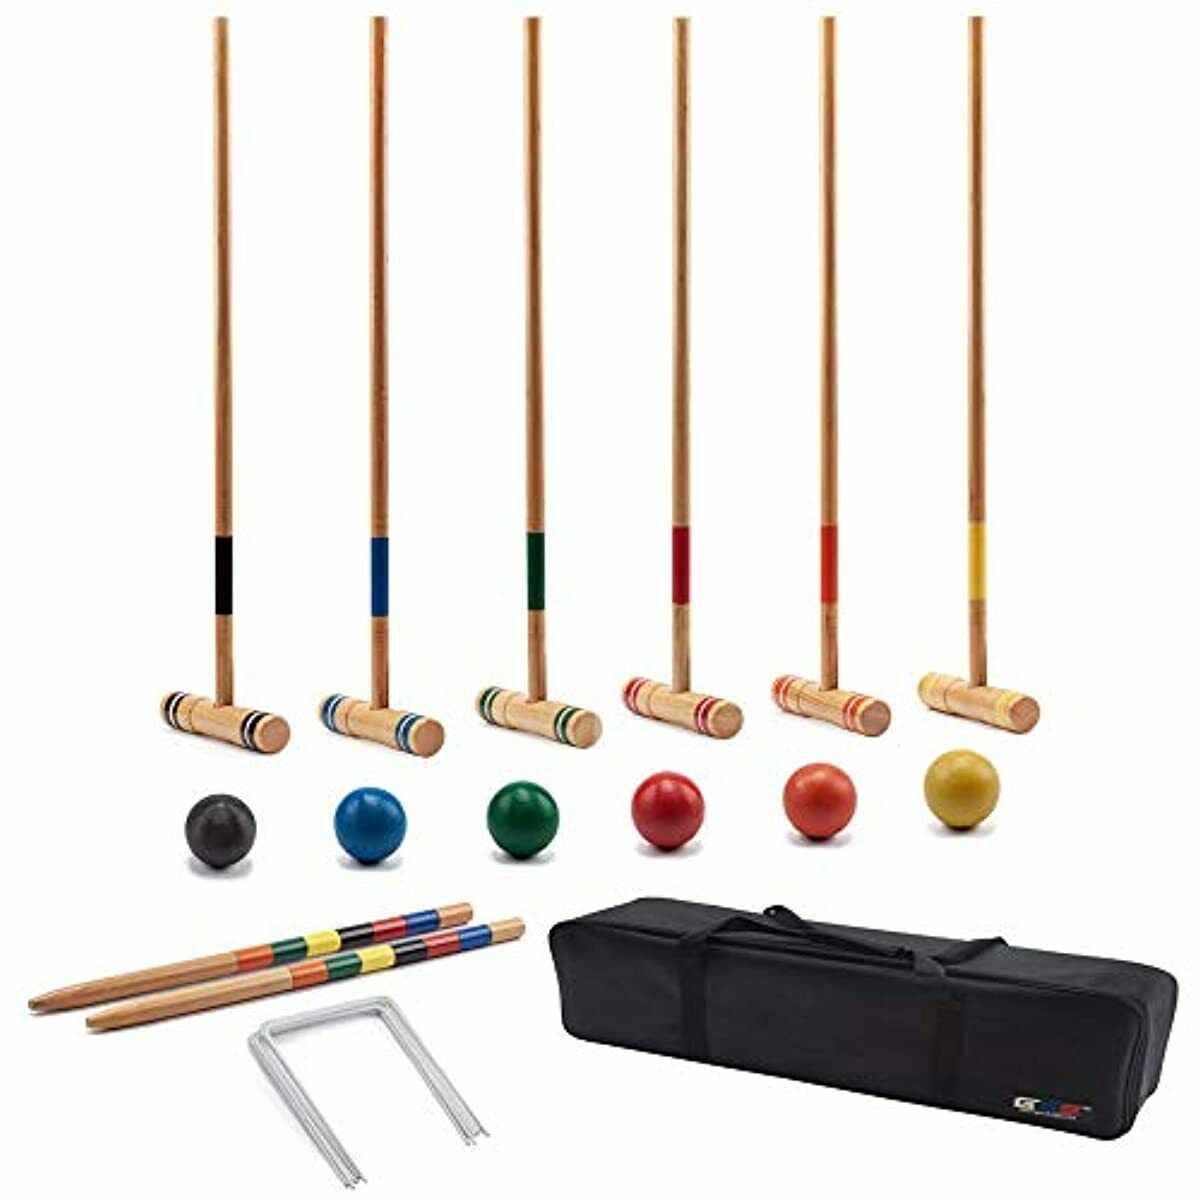 Cool Games Full Croquet Set For Kid Adult families 6 Player